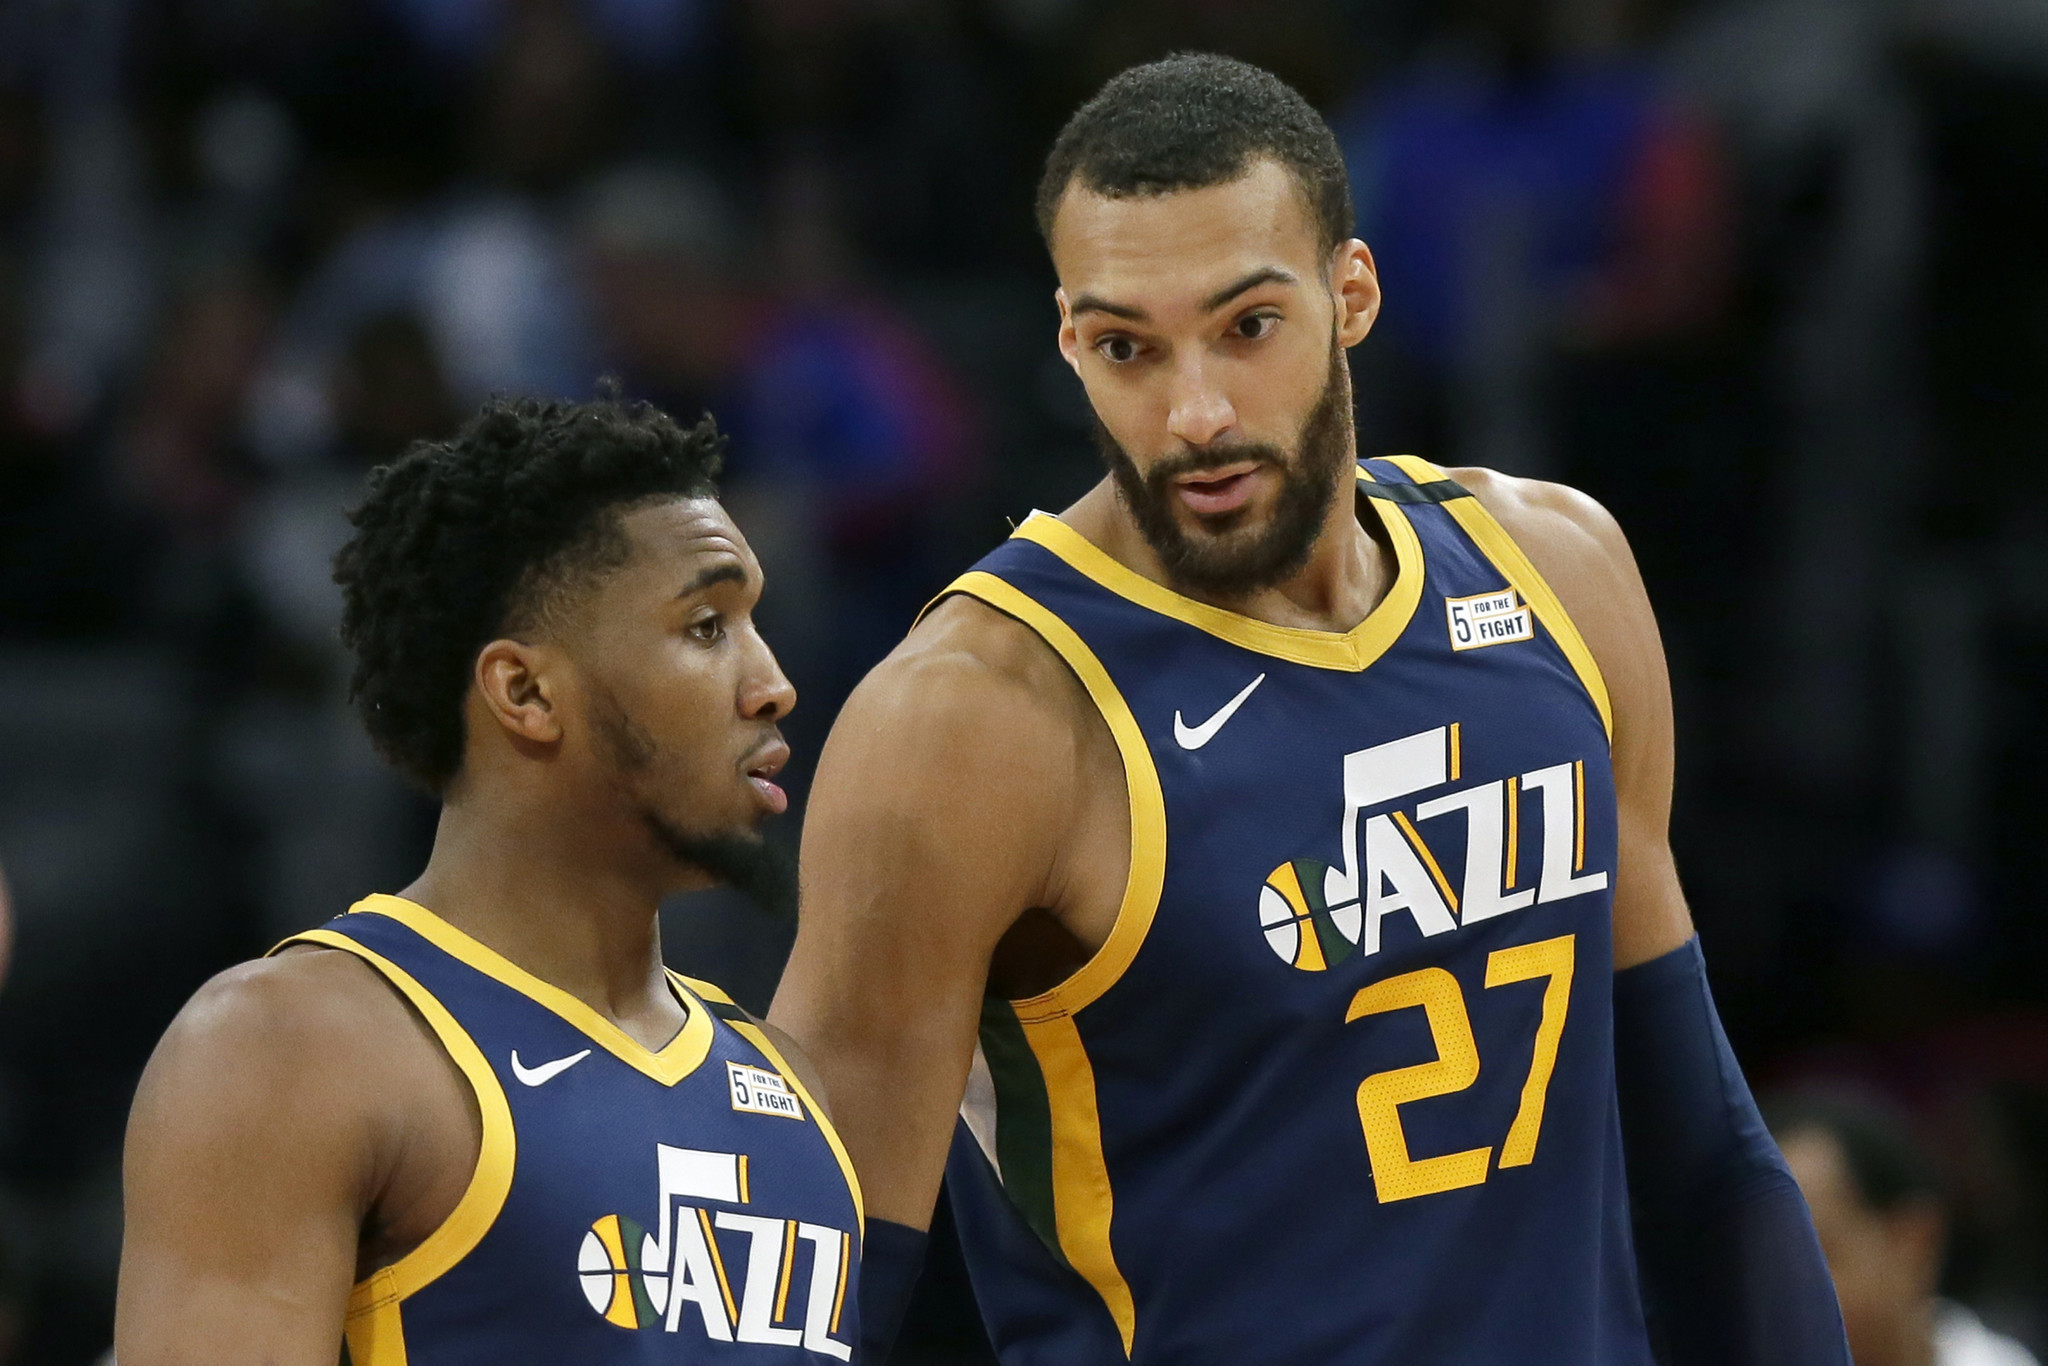 Utah Jazz claim all players, including Rudy Gobert and Donovan Mitchell, and staff 'no longer pose a risk of infection'